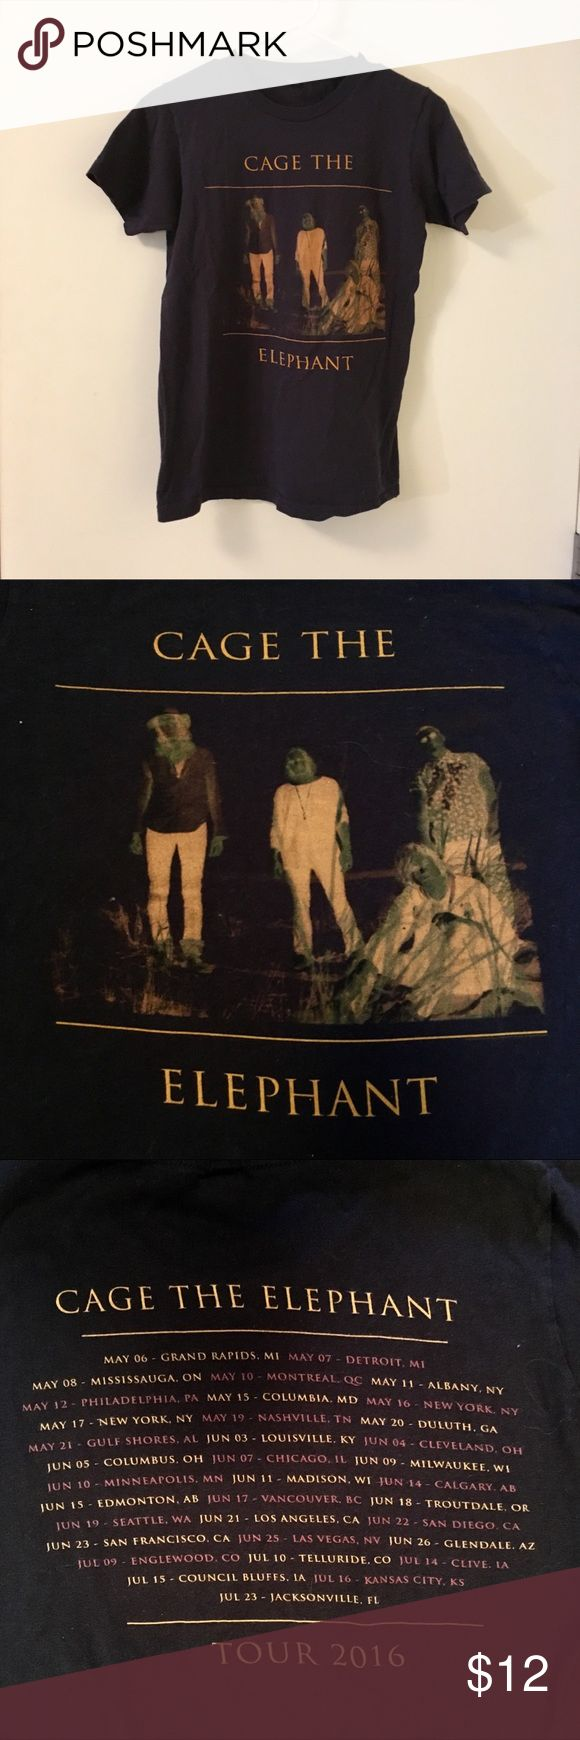 Cage The Elephant Concert Tee Navy blue Cage the Elephant t-shirt! Exclusive from 2016 tour Tops Tees - Short Sleeve